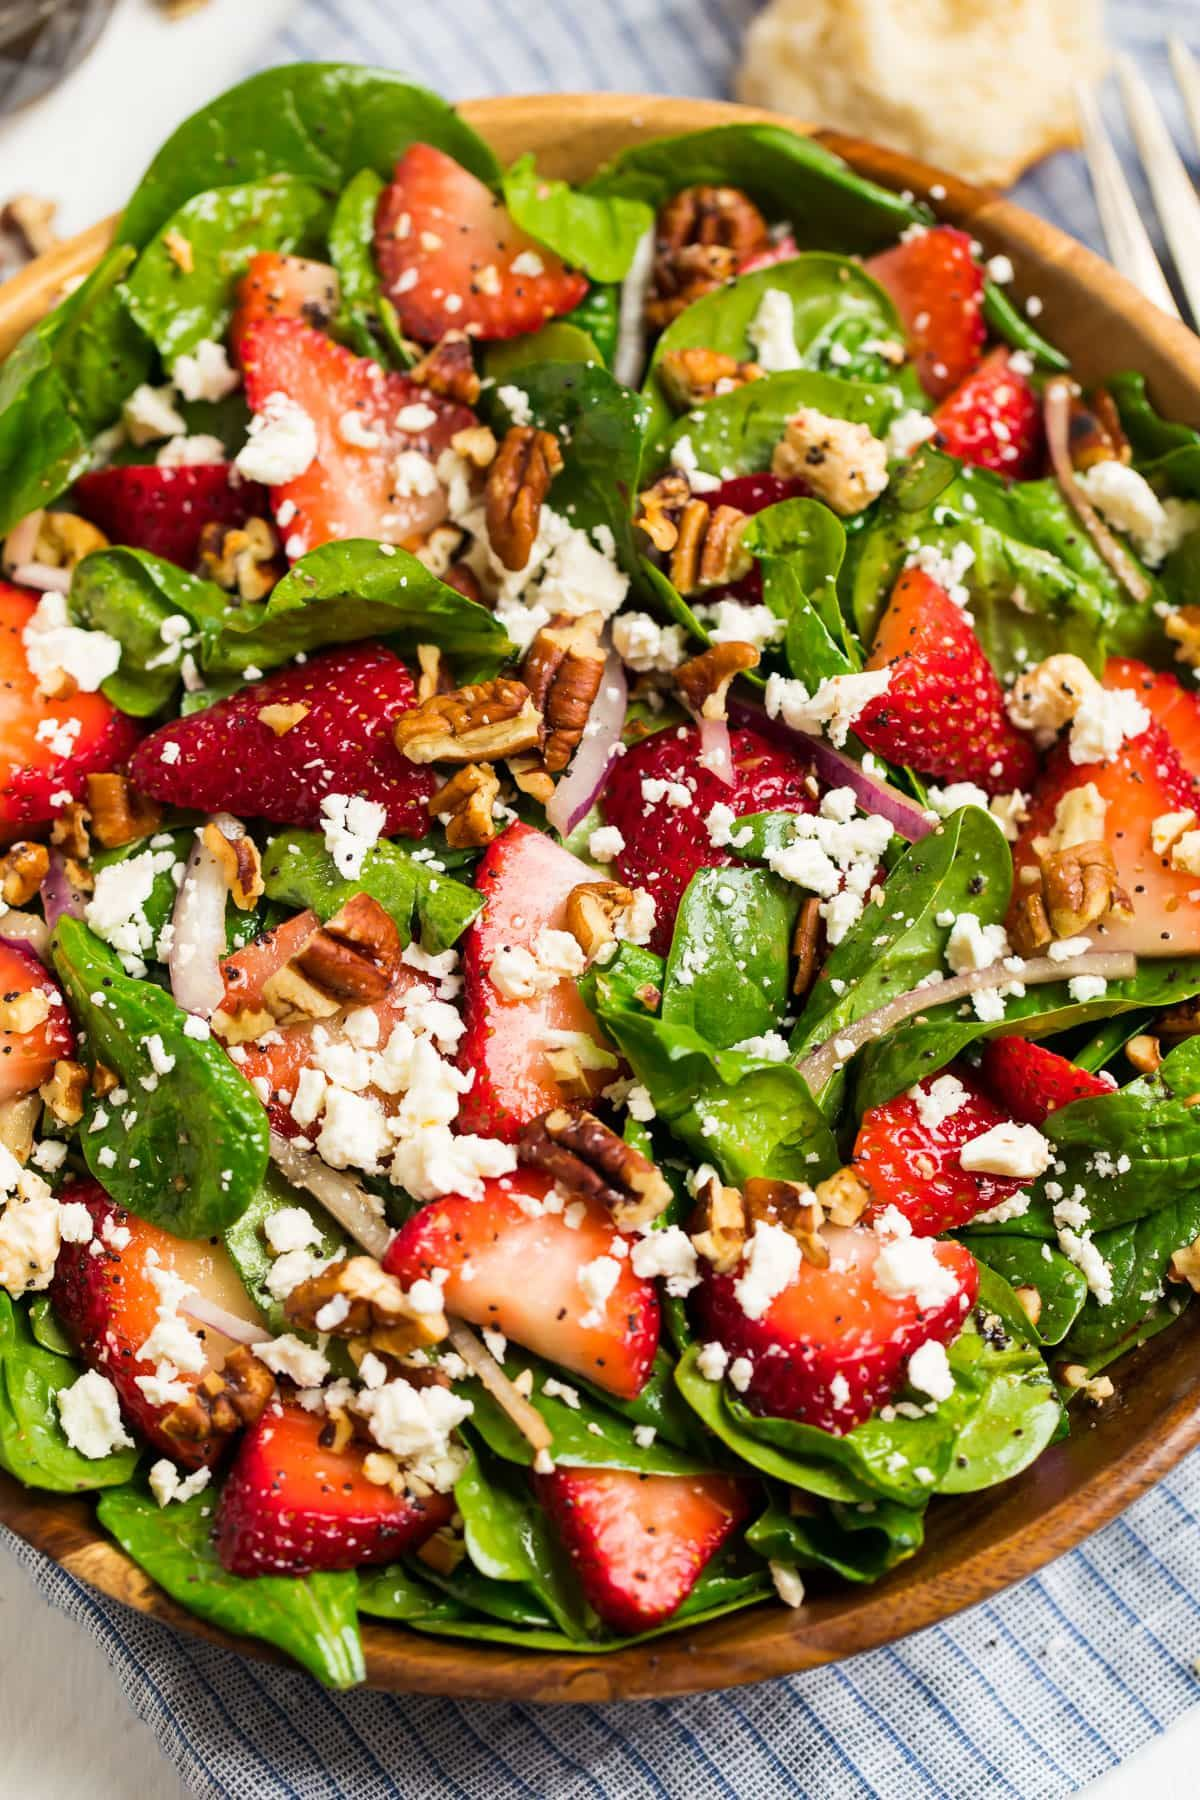 Photo of Spinach Strawberry Salad with Balsamic Poppy Seed Dressing